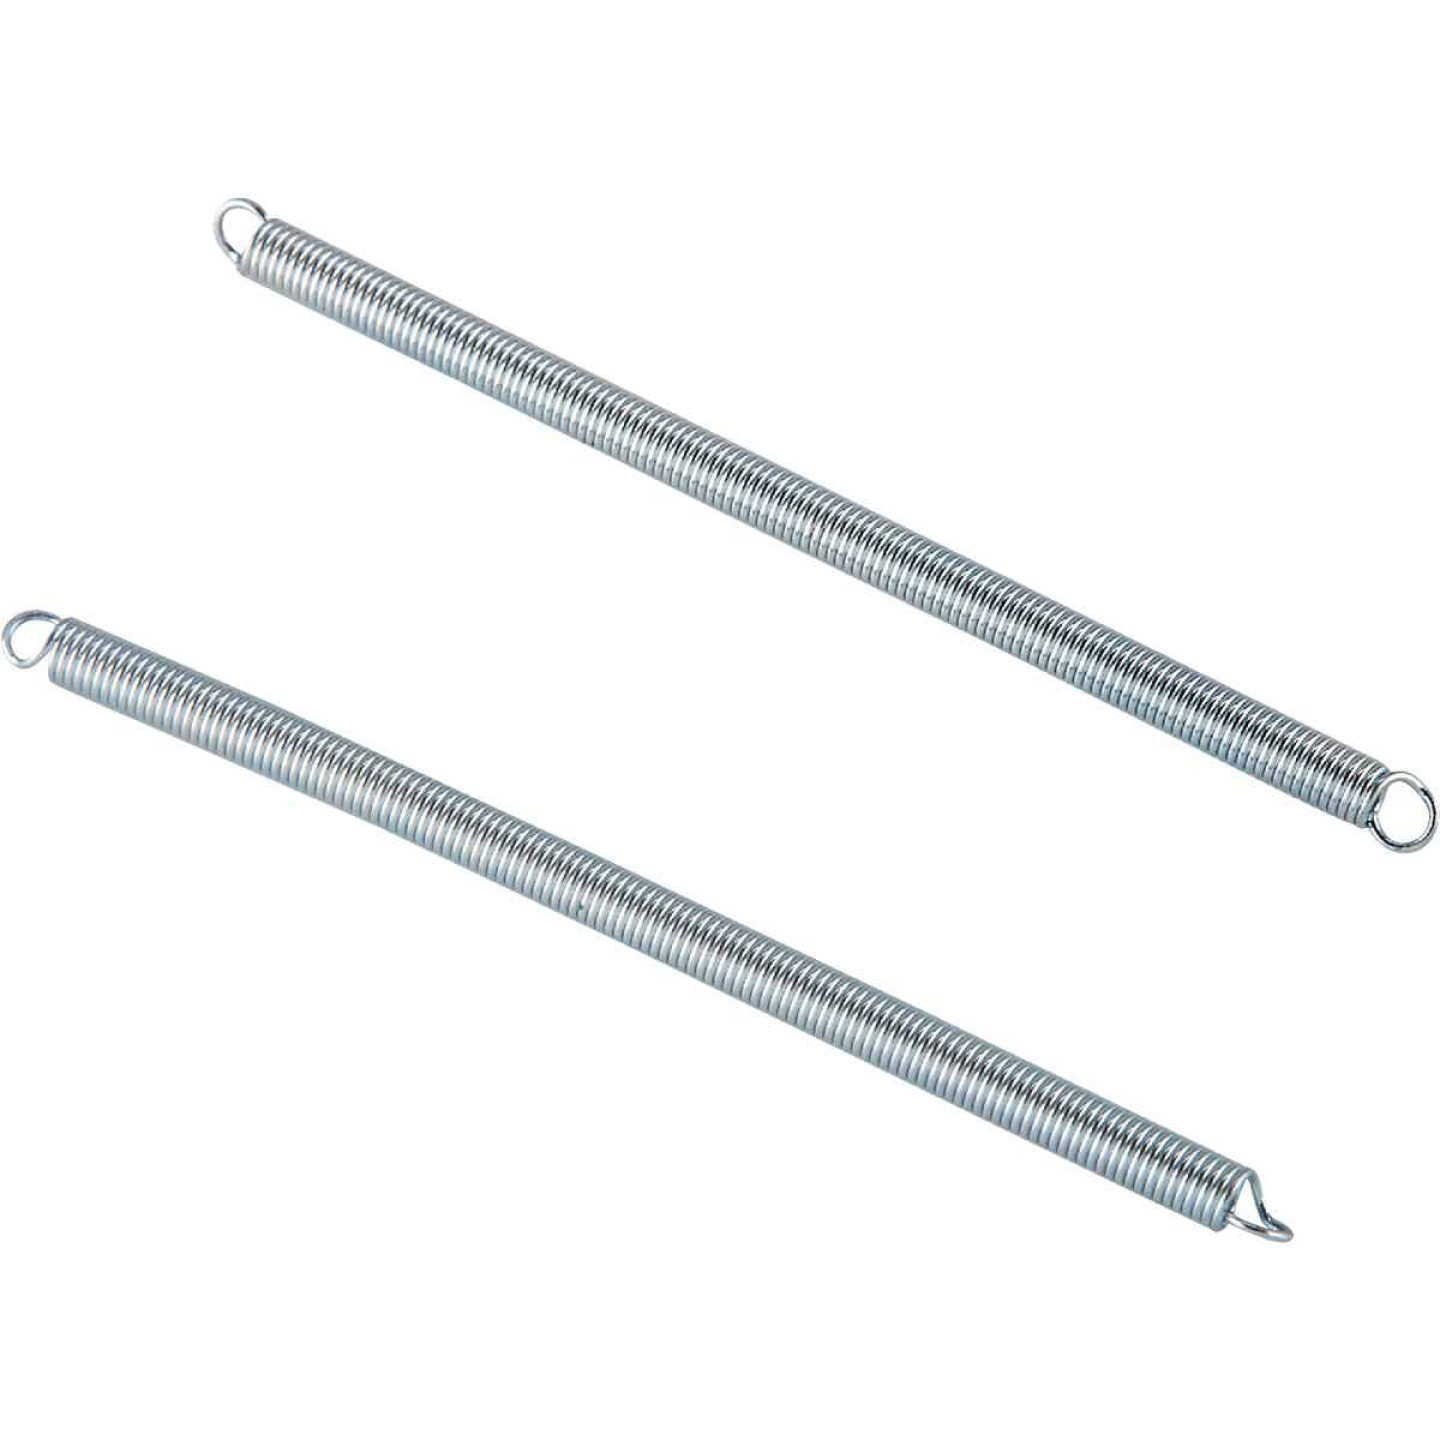 Century Spring 1-5/8 In. x 1/2 In. Extension Spring (2 Count) Image 1